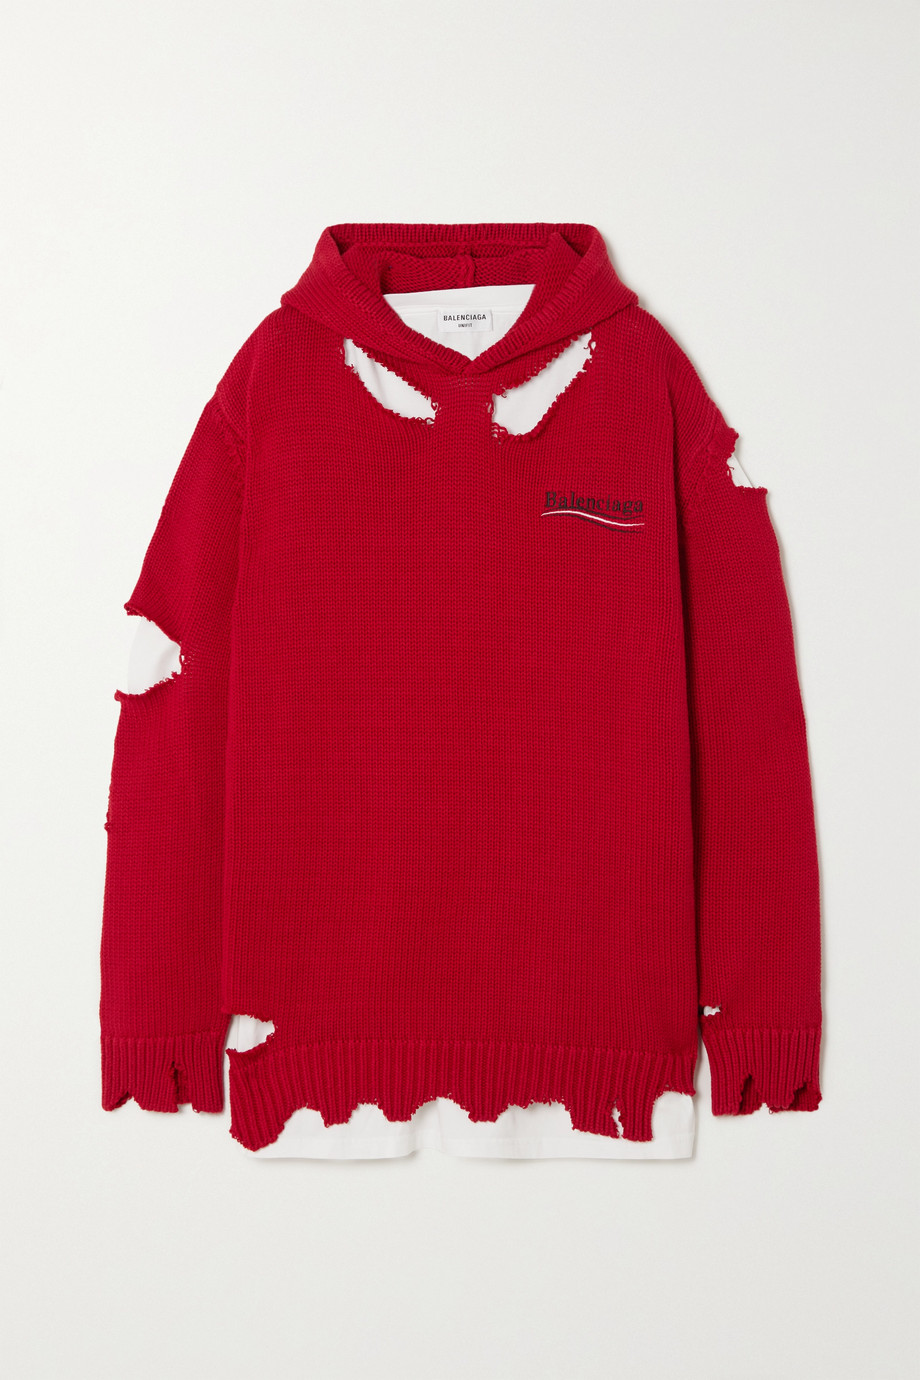 Balenciaga Oversized layered distressed printed cotton and jersey hoodie